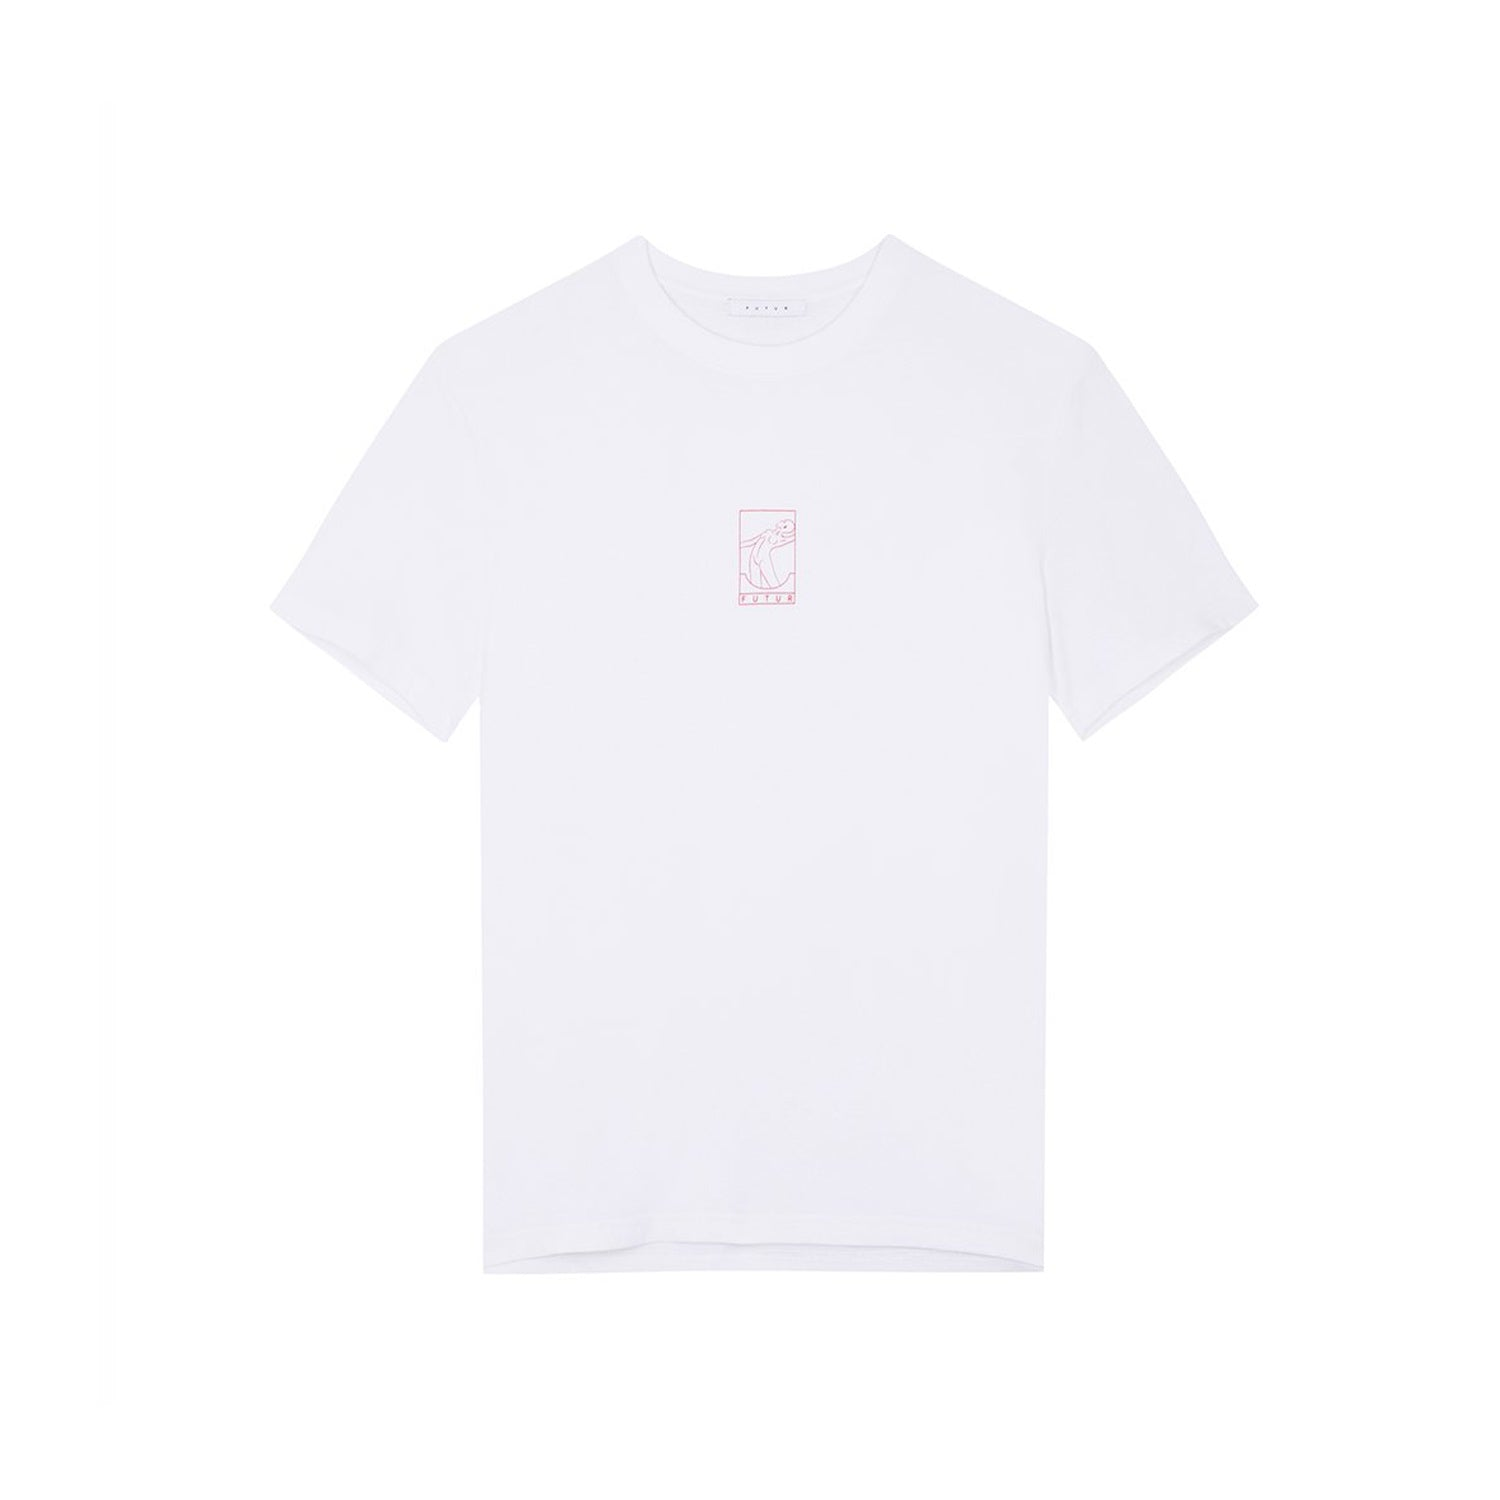 Futur Season 10 Outline Tee - White